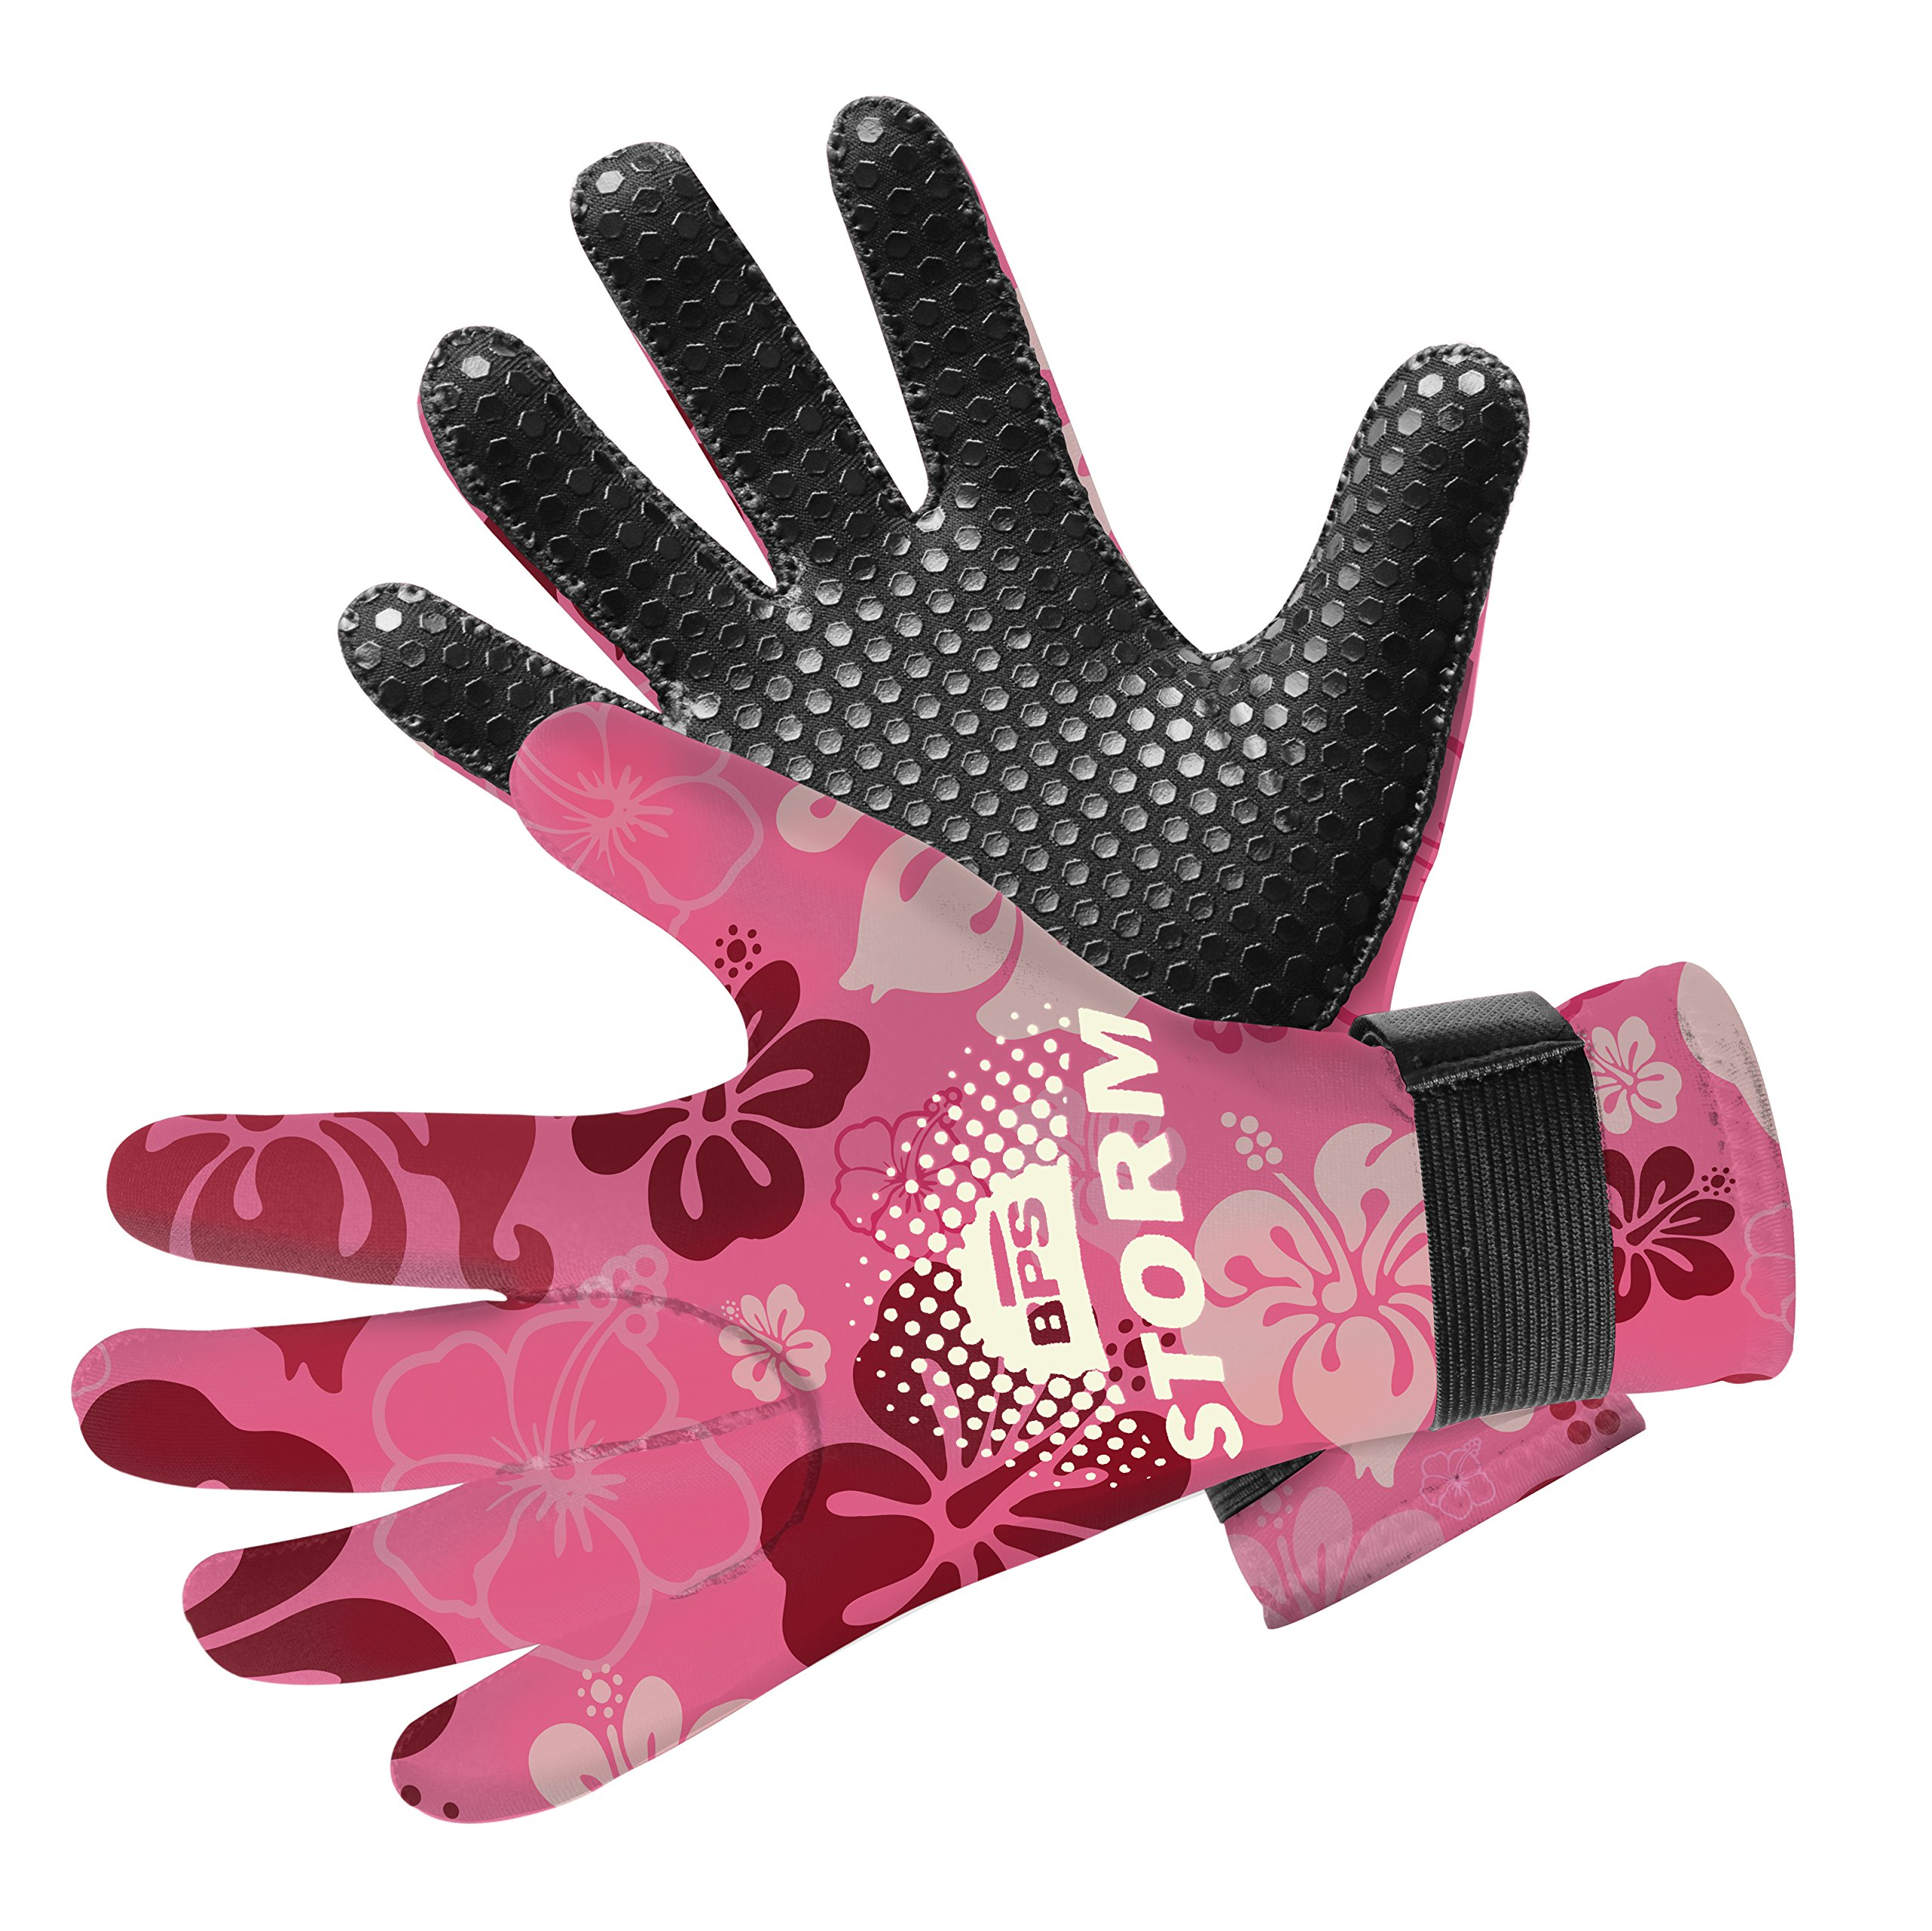 BPS Neoprene 3mm Gloves with Anti-Slip Rubber Printing - Warm and Comfortable Gloves for Water Jetski, Wakeboarding, Rafting, Surf, and Other Winter Activities - Unisex (Floral Pink/White, XX Large) by BPS